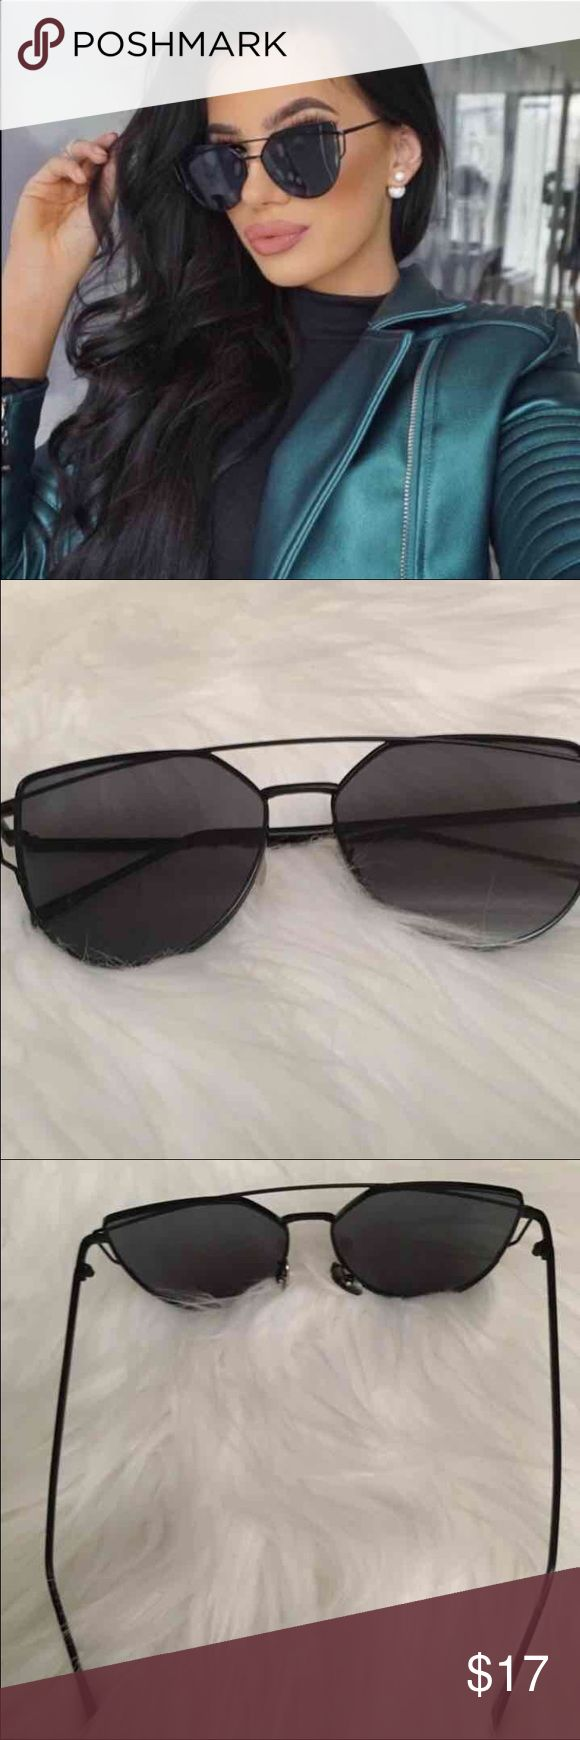 New Black Retro Chic Sunglasses Women Brand New Retro Style Chic Sunglasses   -Black  -One Size -Does not include pouch/case *This is for the black pair only :)   ✔️Firm Price ✔️Ships 1-2 days (except weekends) Accessories Sunglasses